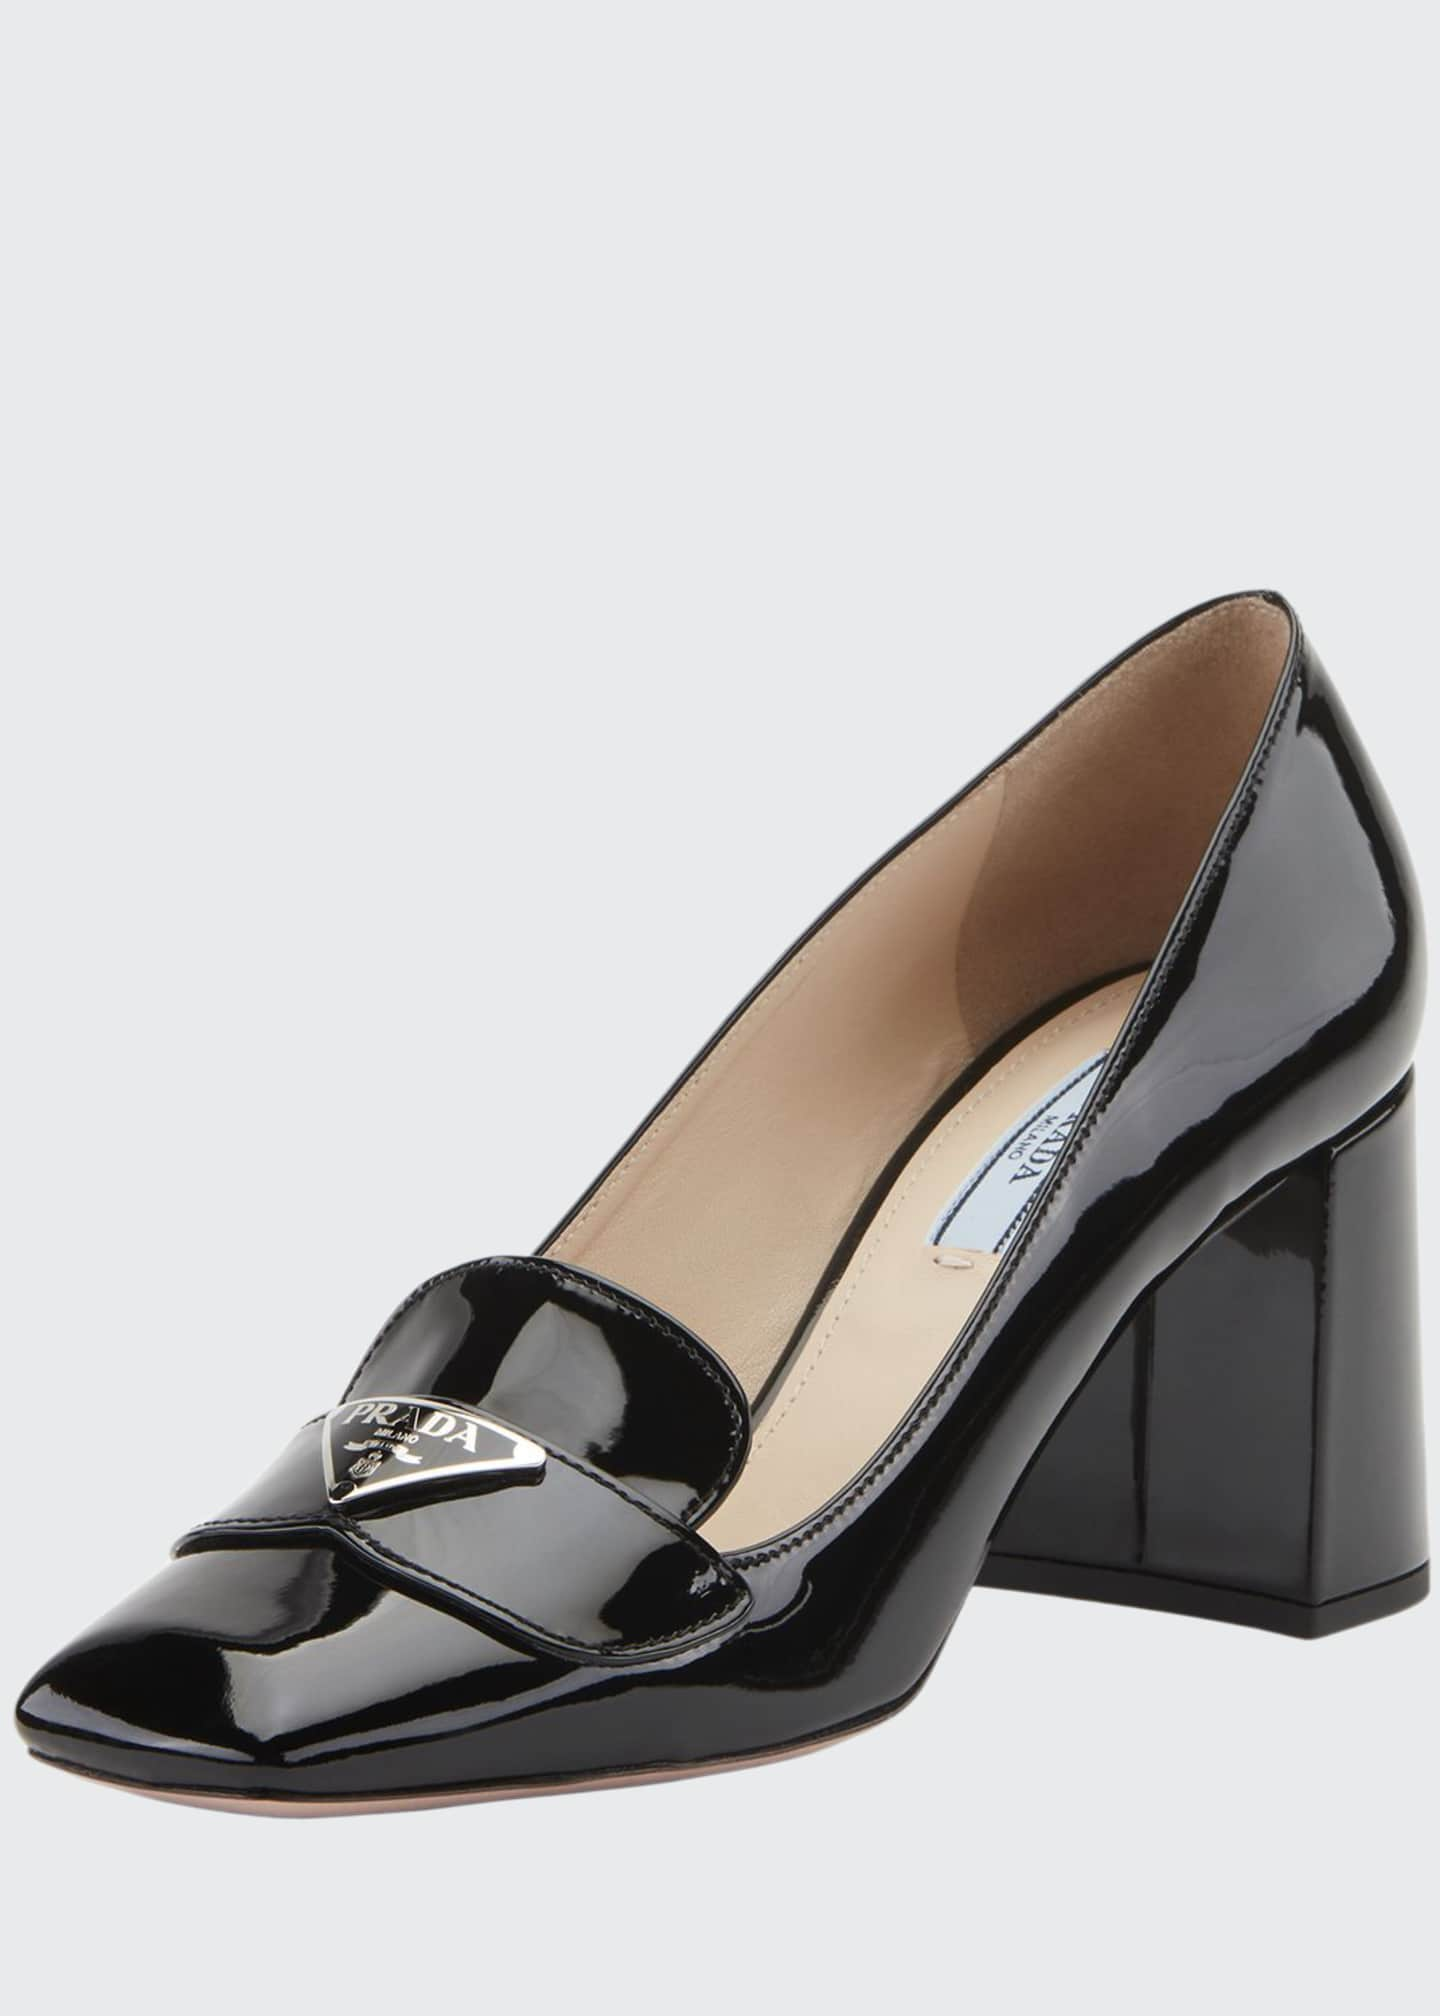 Prada Patent Logo Loafer Pumps